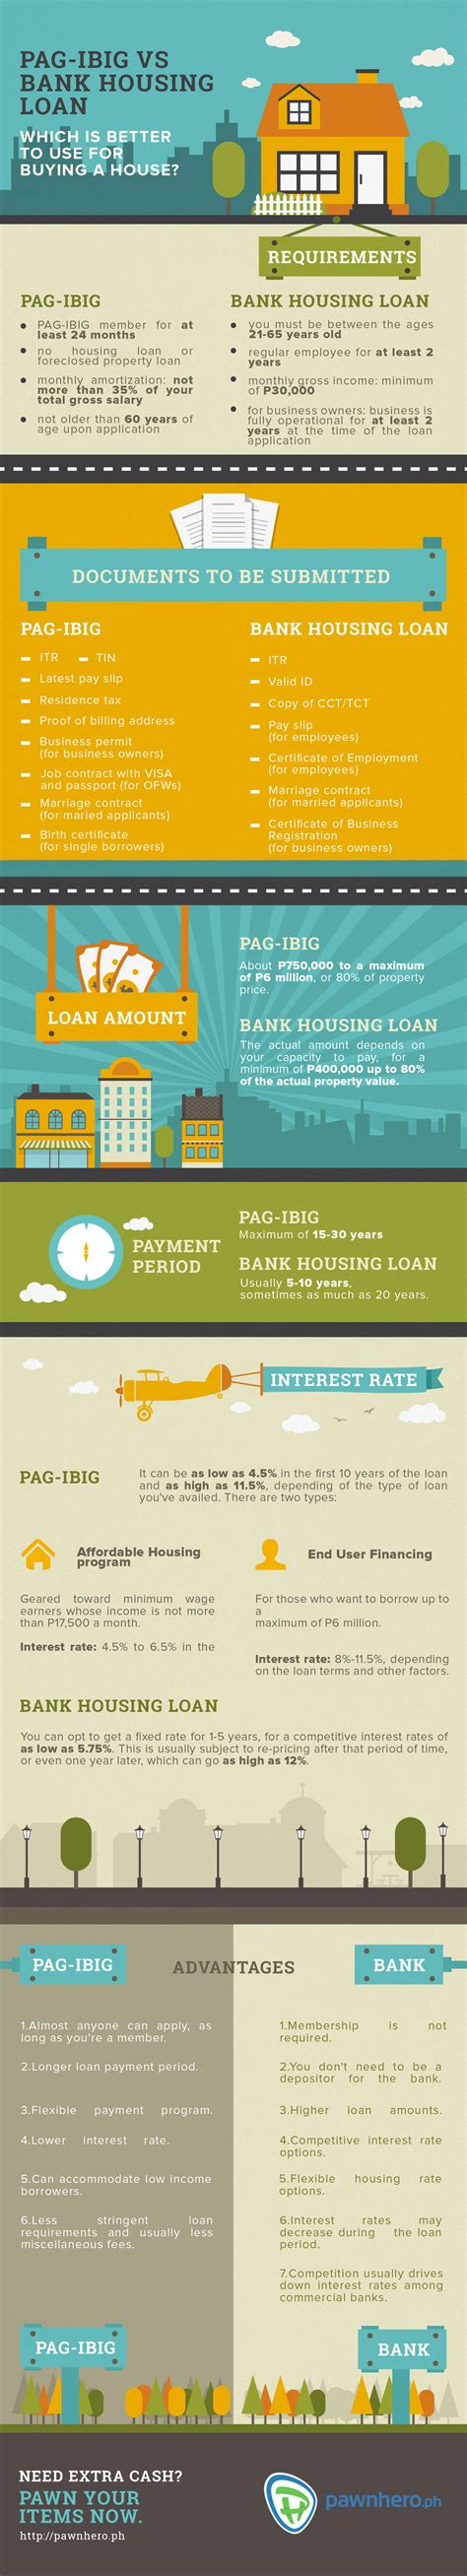 pag ibig loans housing loan pag ibig vs bank housing loan which is better to use for